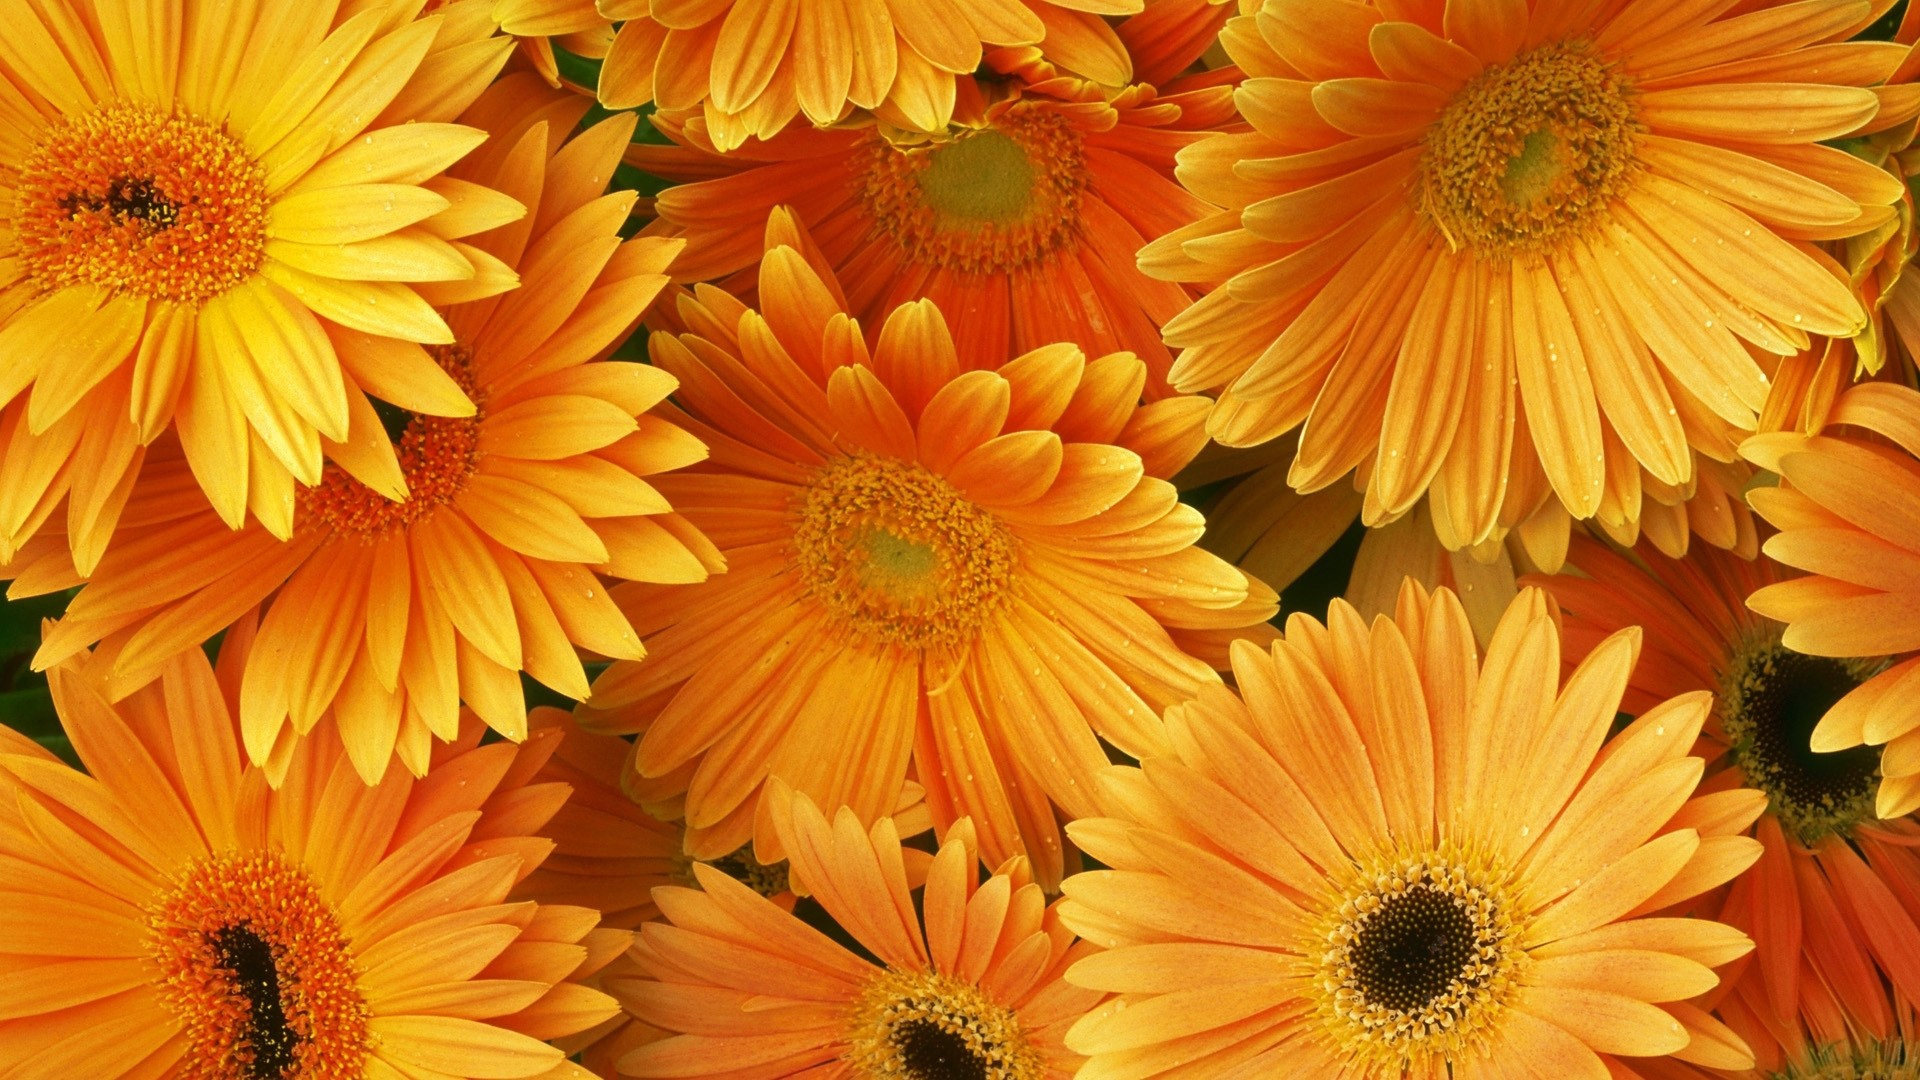 Yellow Flower PC Wallpaper HD